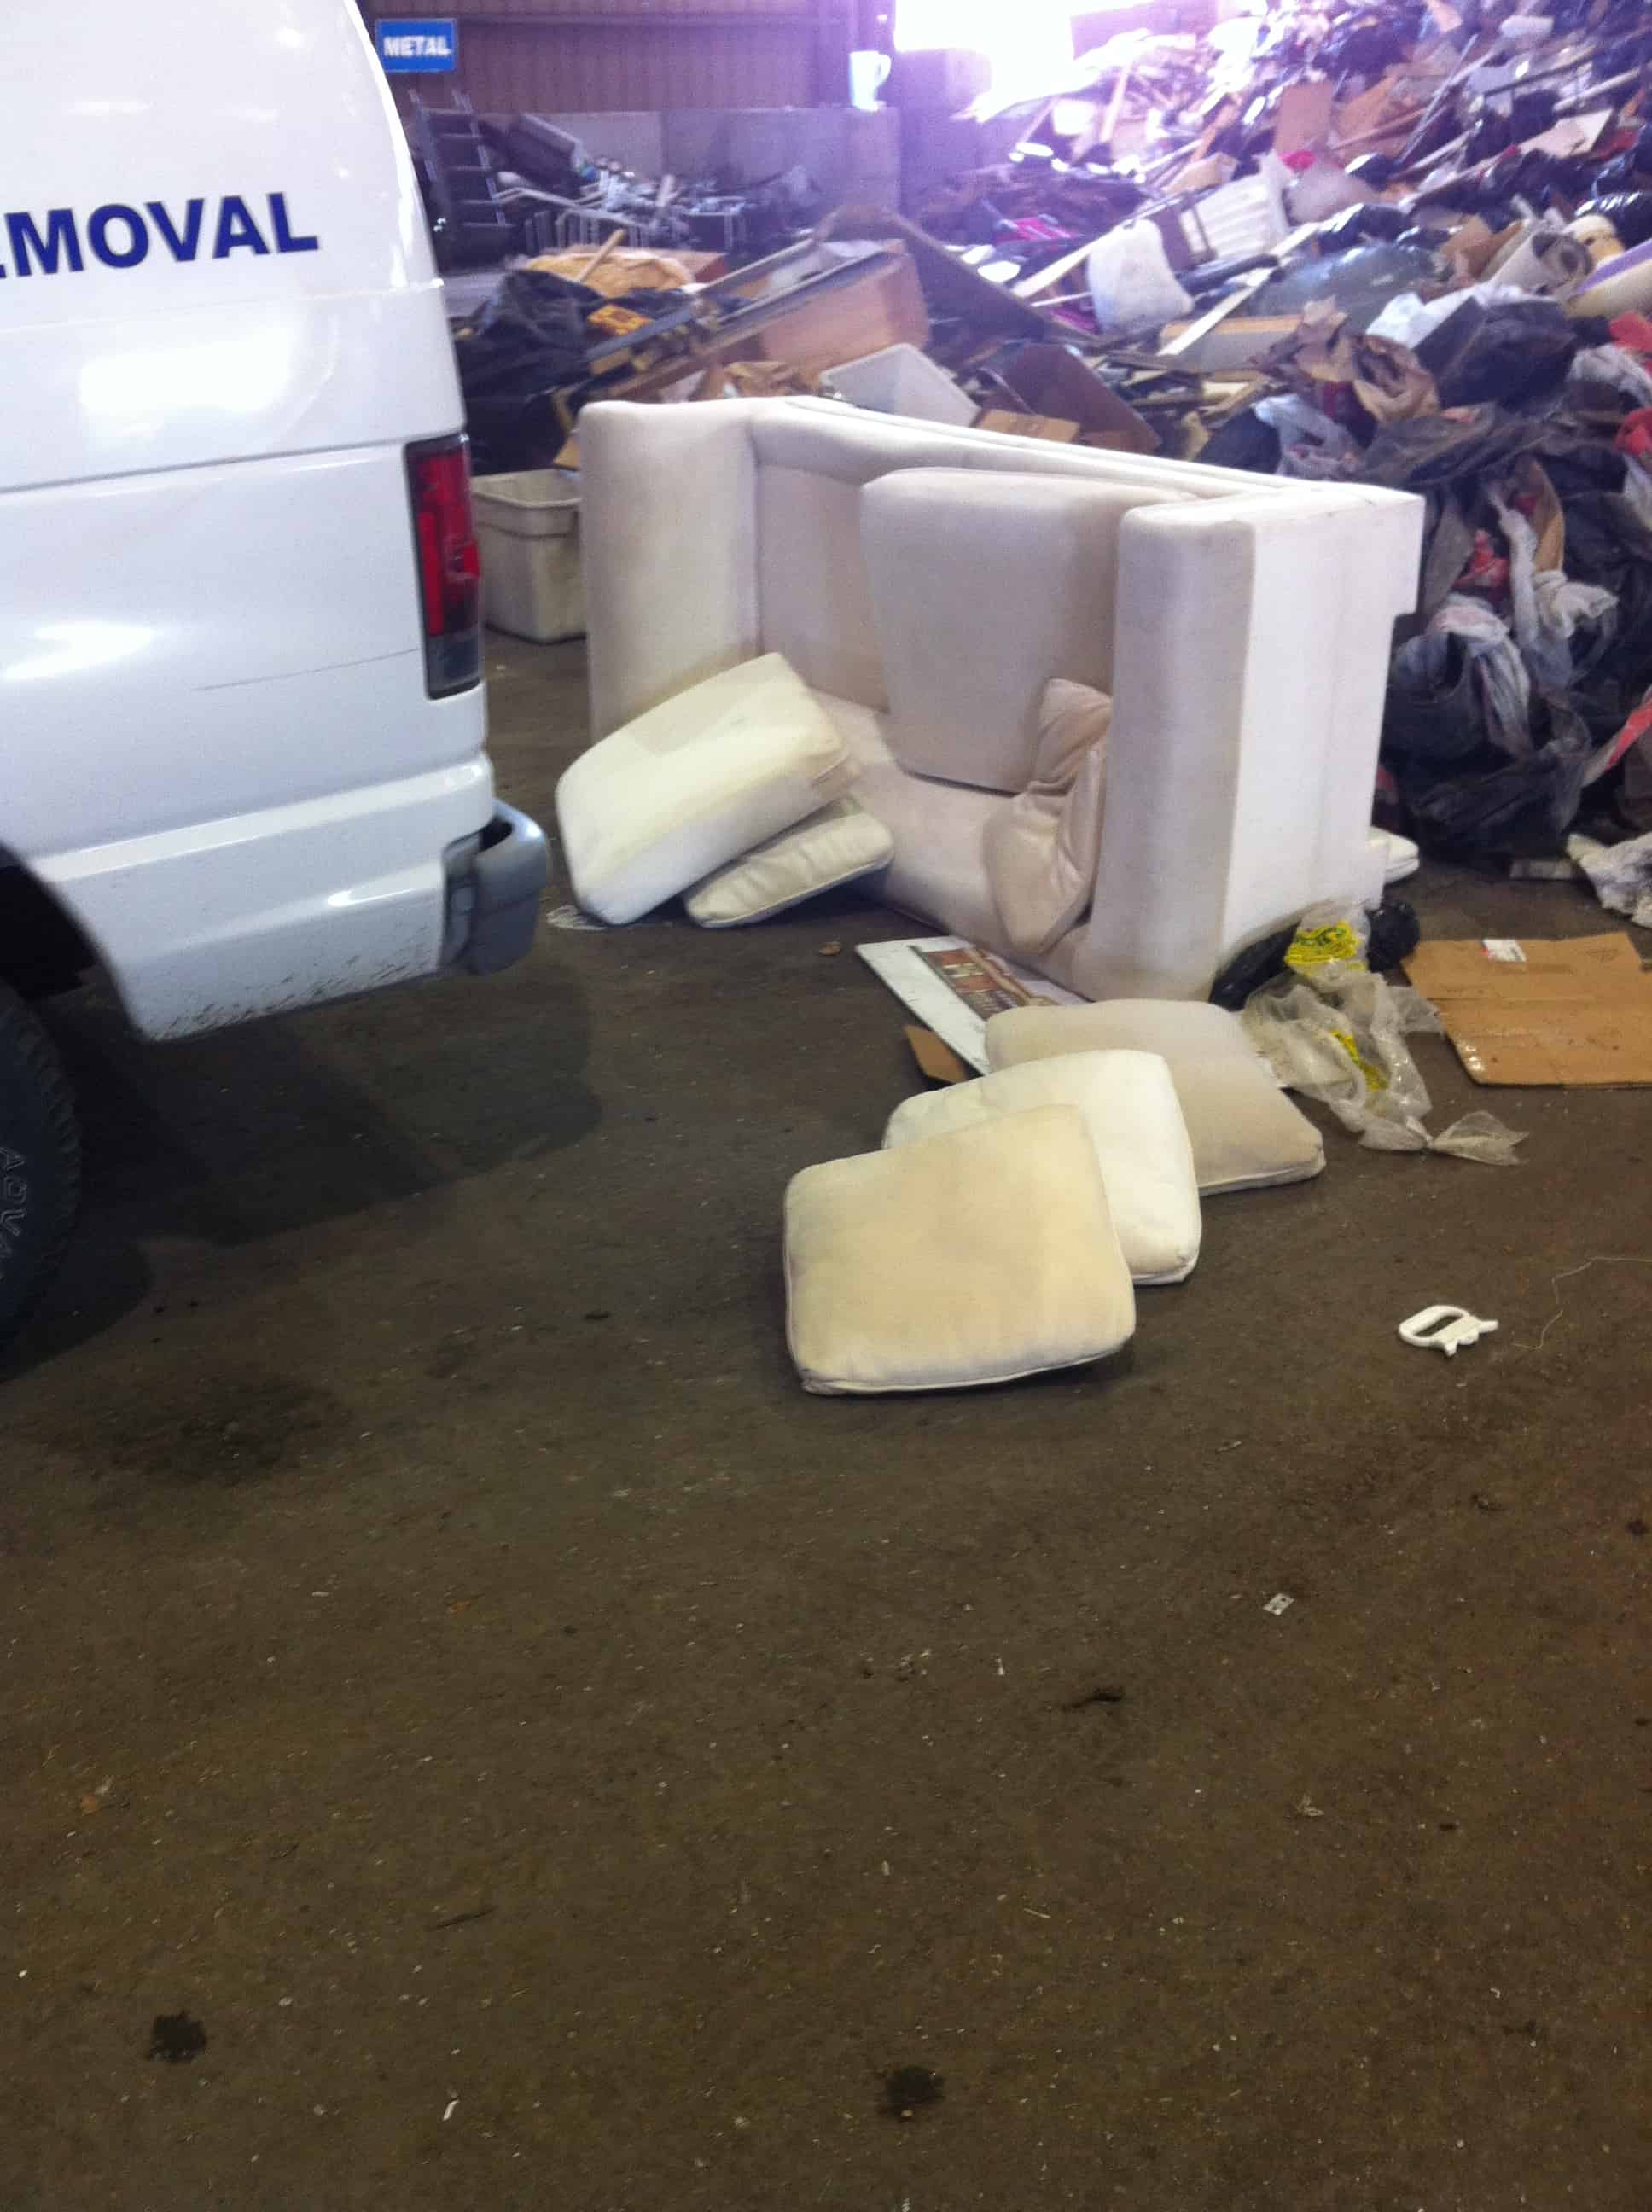 Sofa Bed Couch Bulky Or Junk Items Vancouver Service